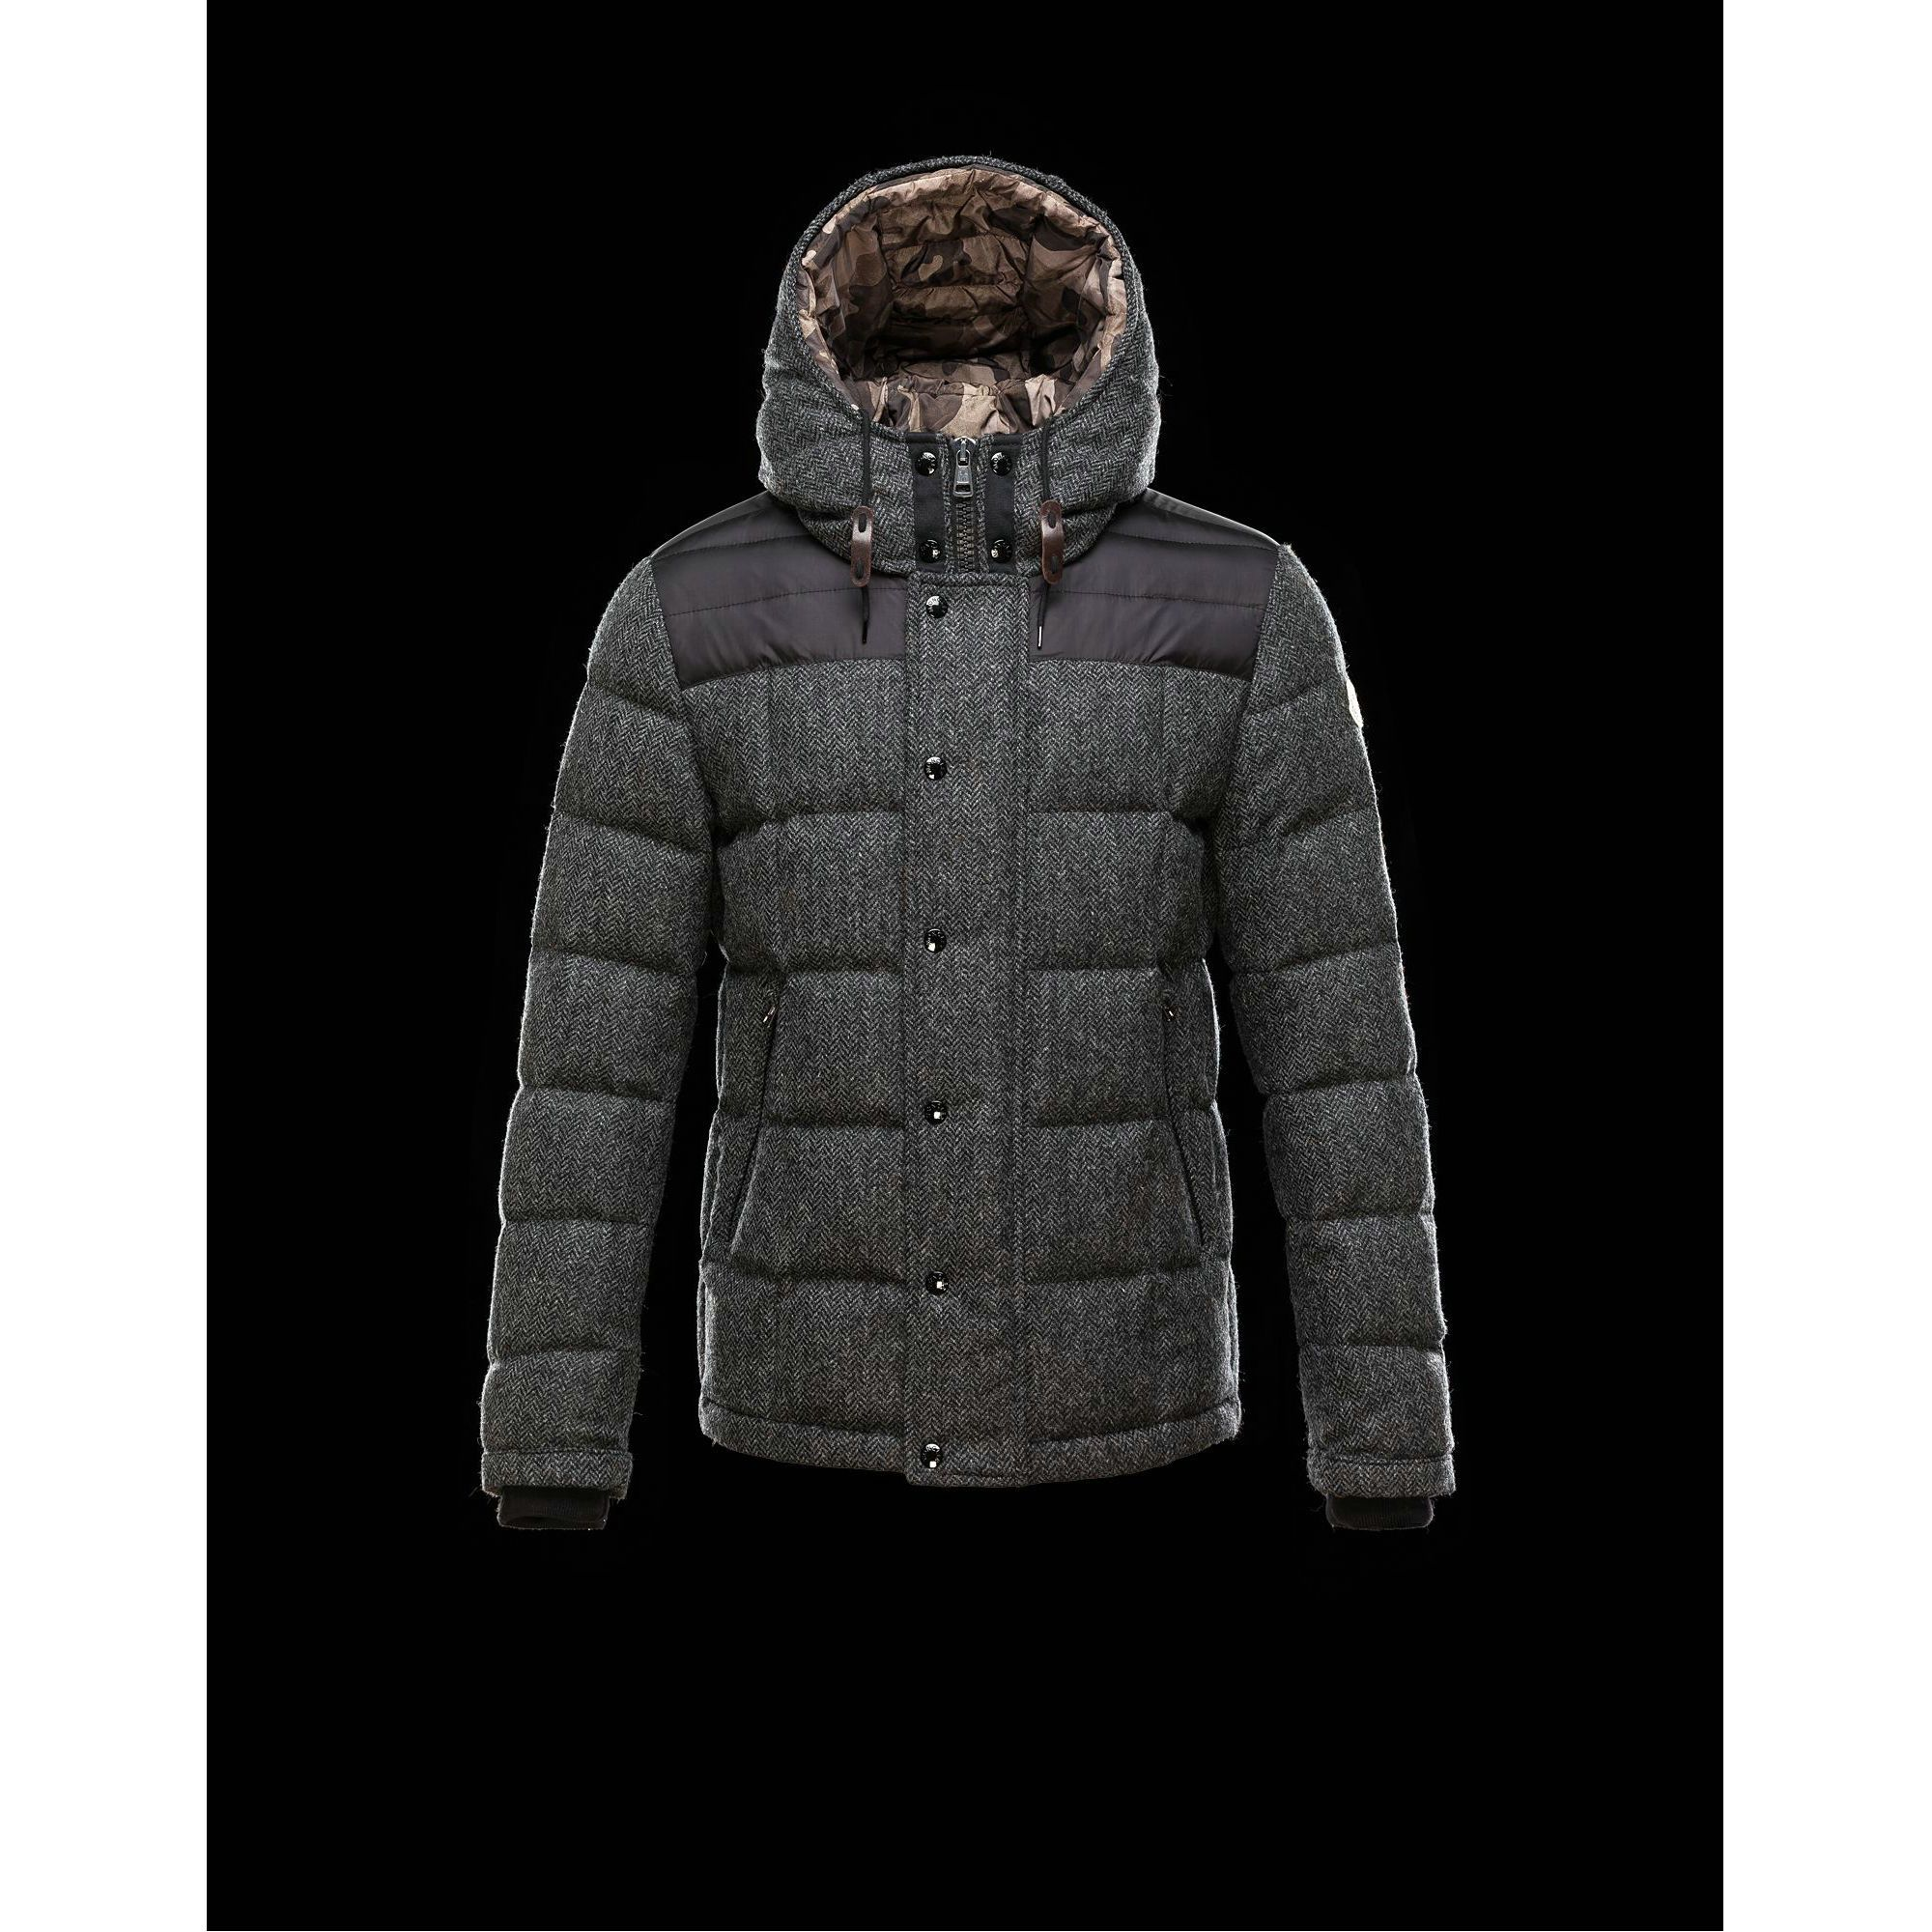 76f26d1bb42a 2015 New! Moncler GUYENNE Featured Down Jackets Mens Gray   Herve ...